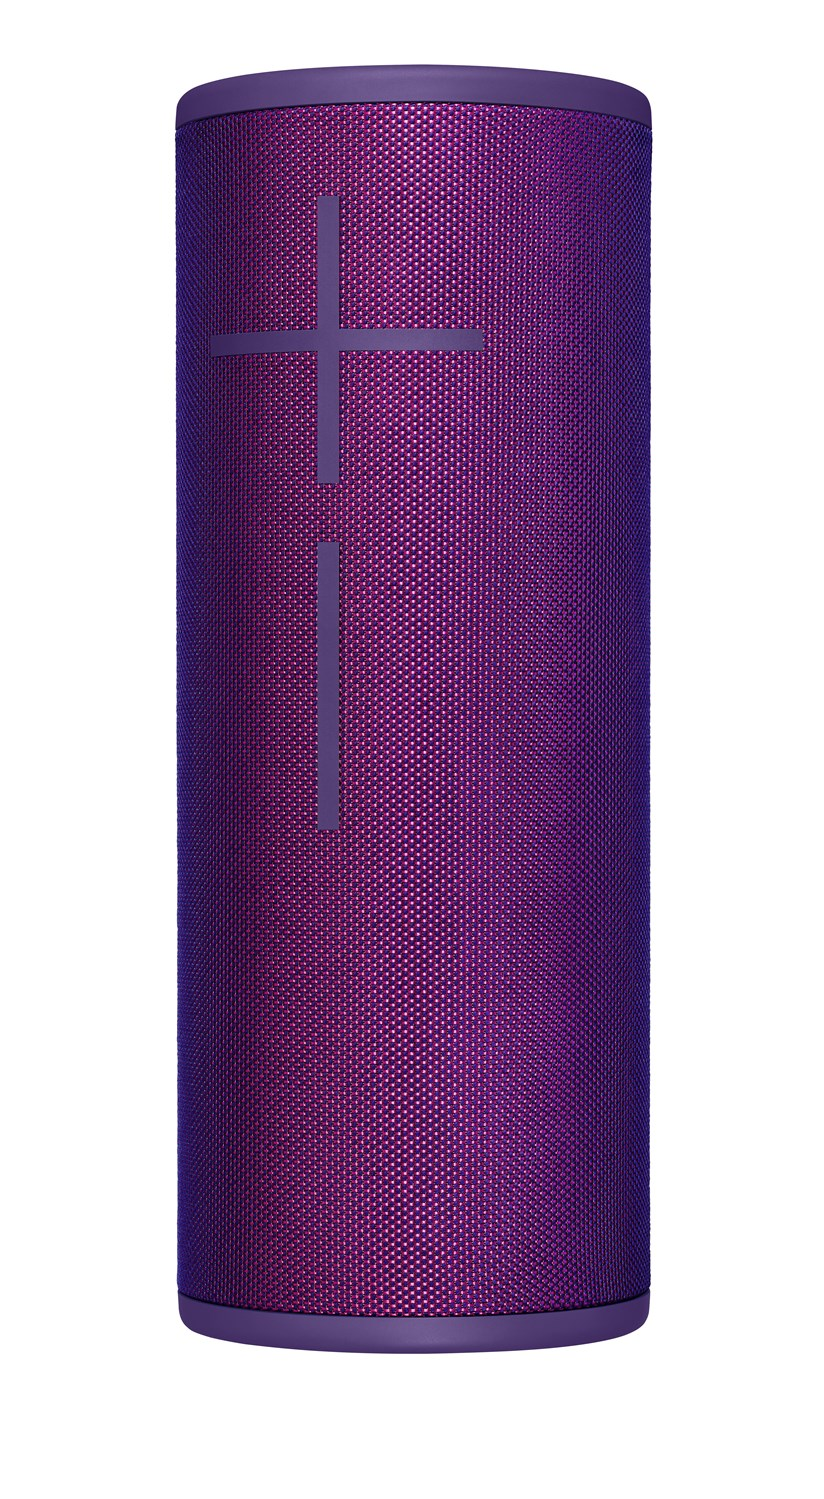 UE MEGABOOM 3 SPEAKER PURPLE EMBARGO 30.08 IN